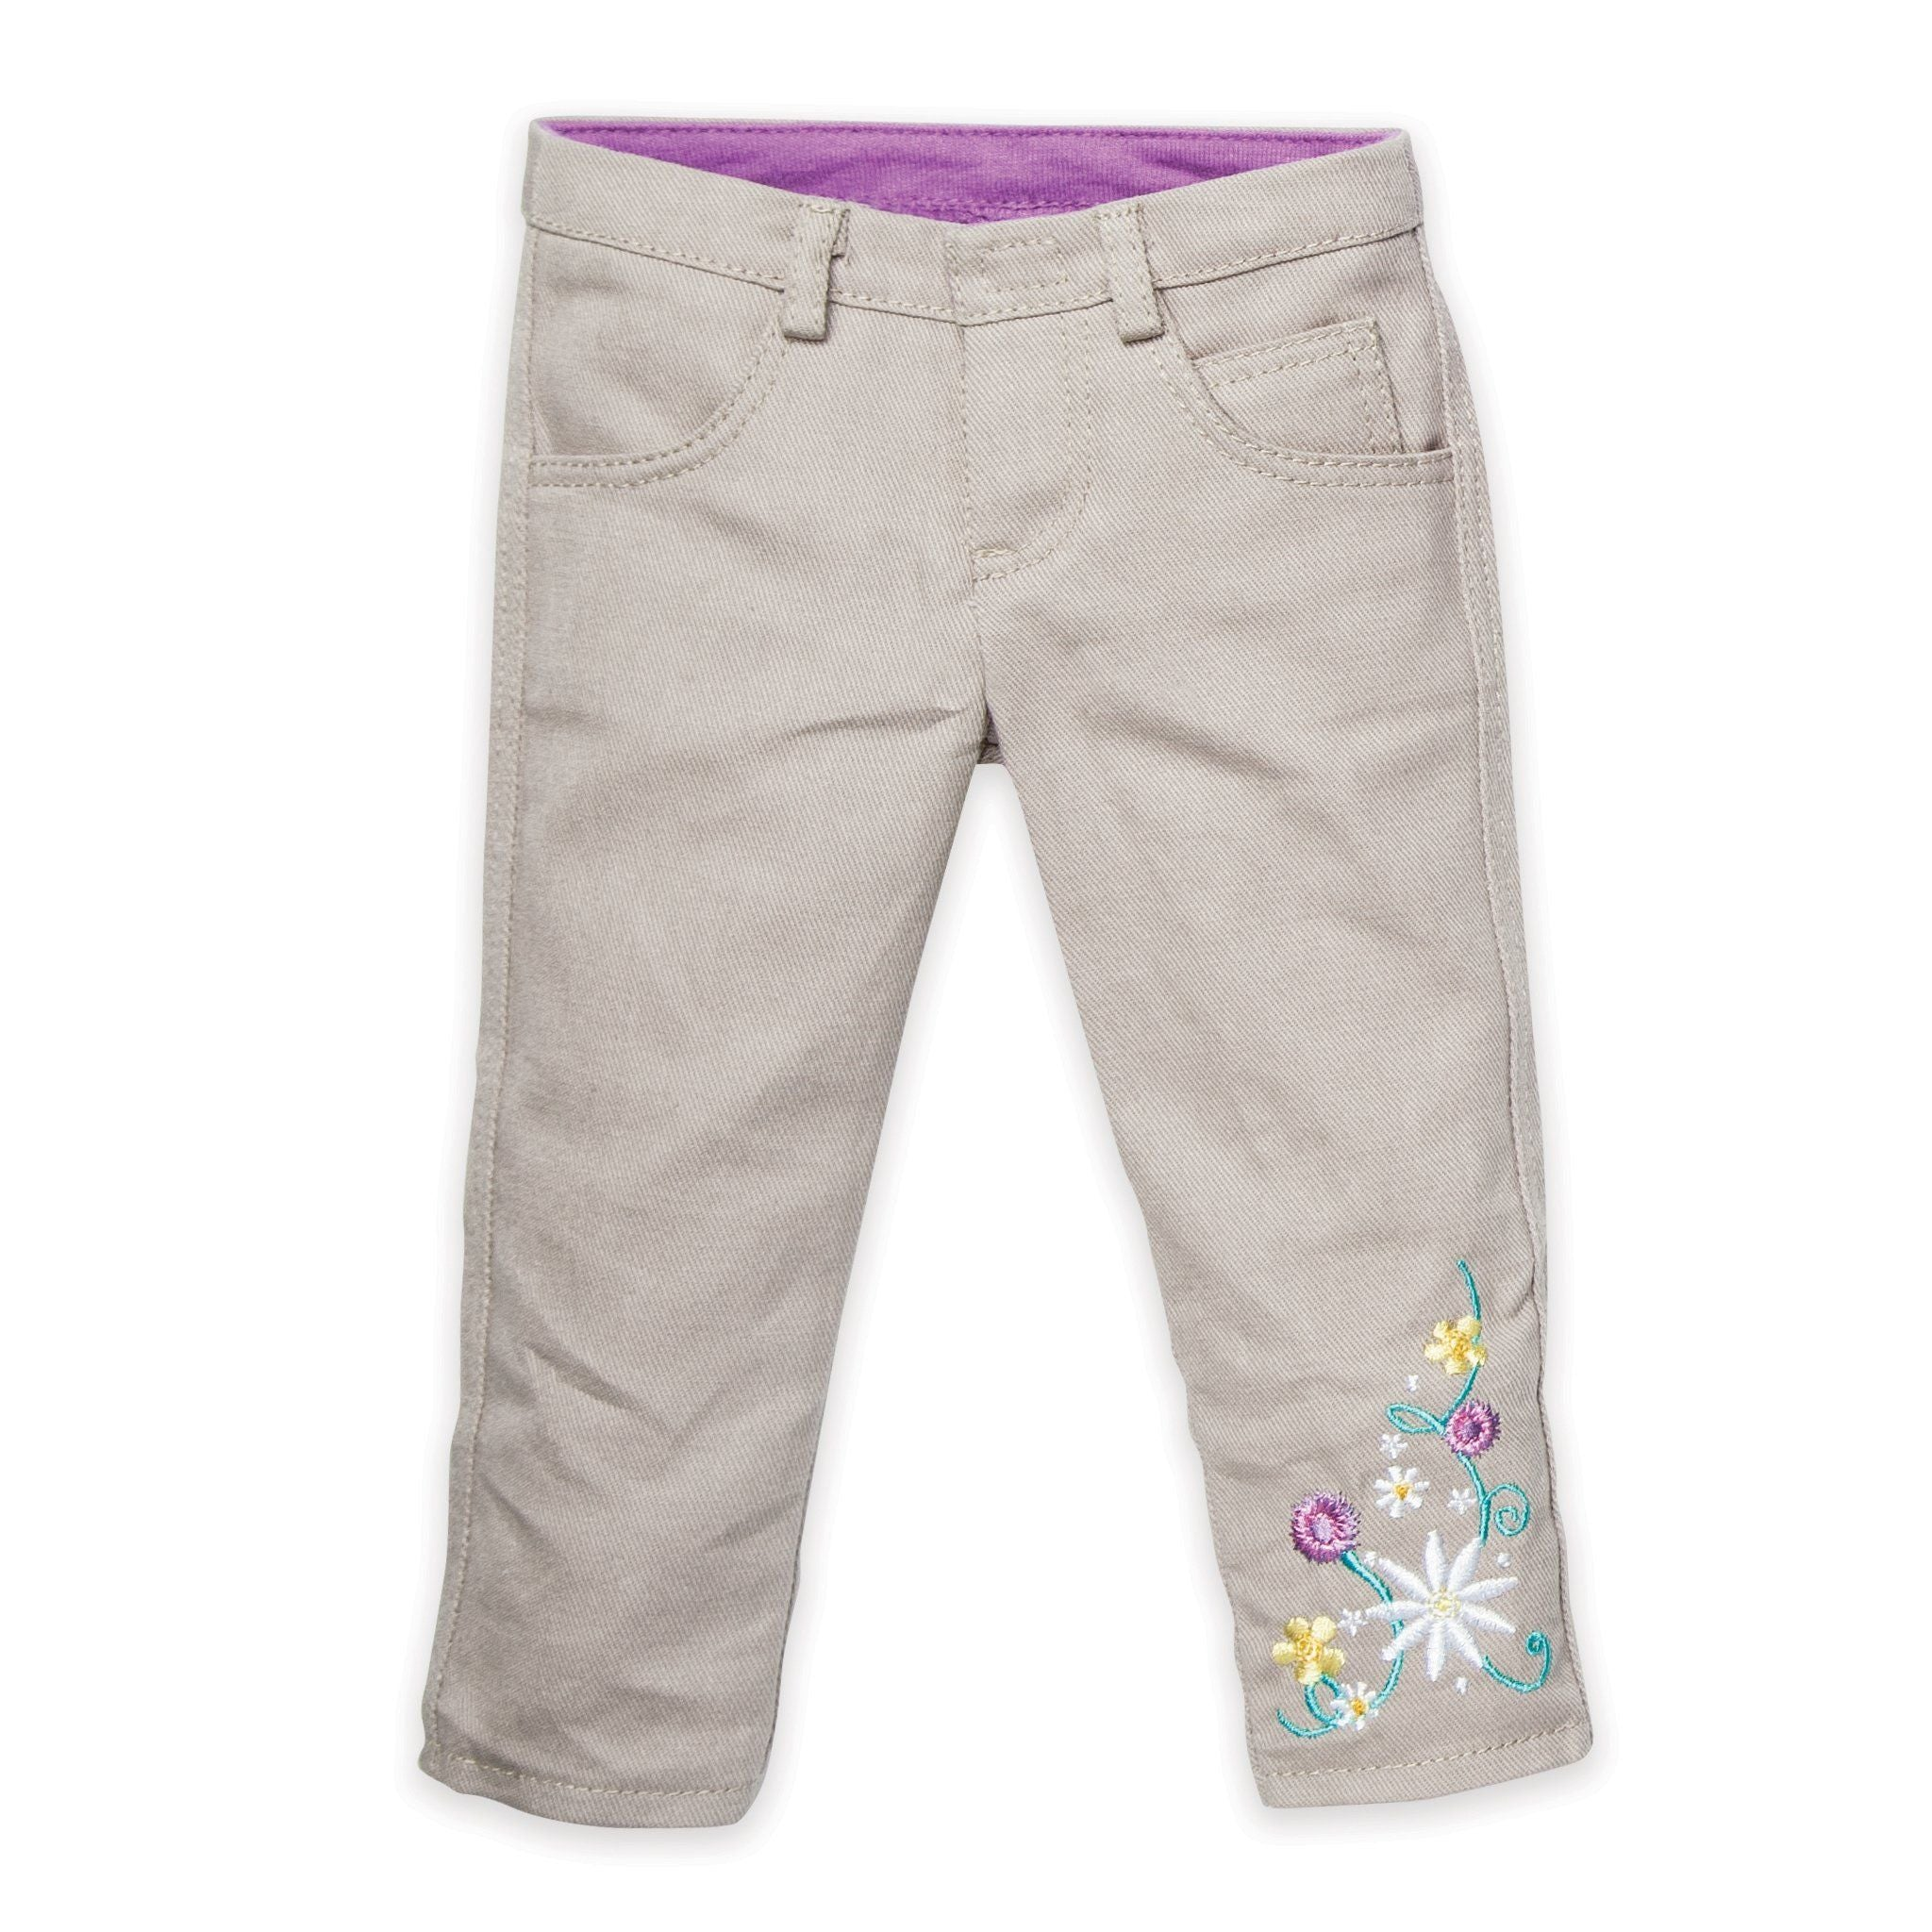 Khaki pants with embroidery for all 18 inch dolls